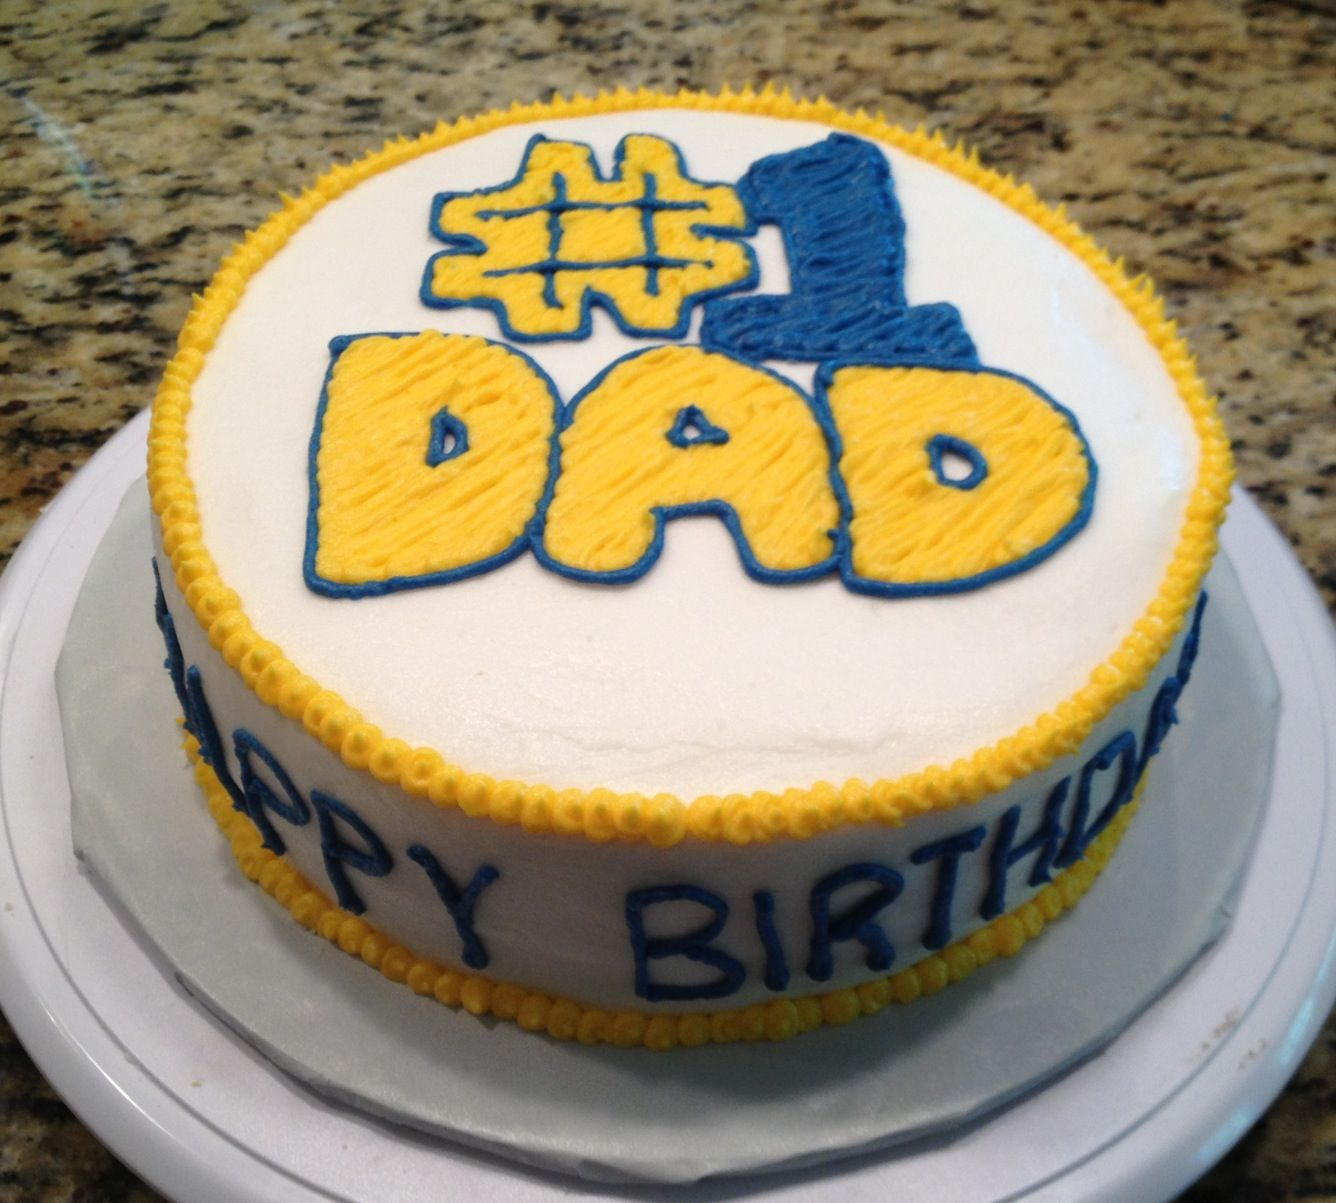 Fathers birthday cake Simply Shane Delicious Treats and